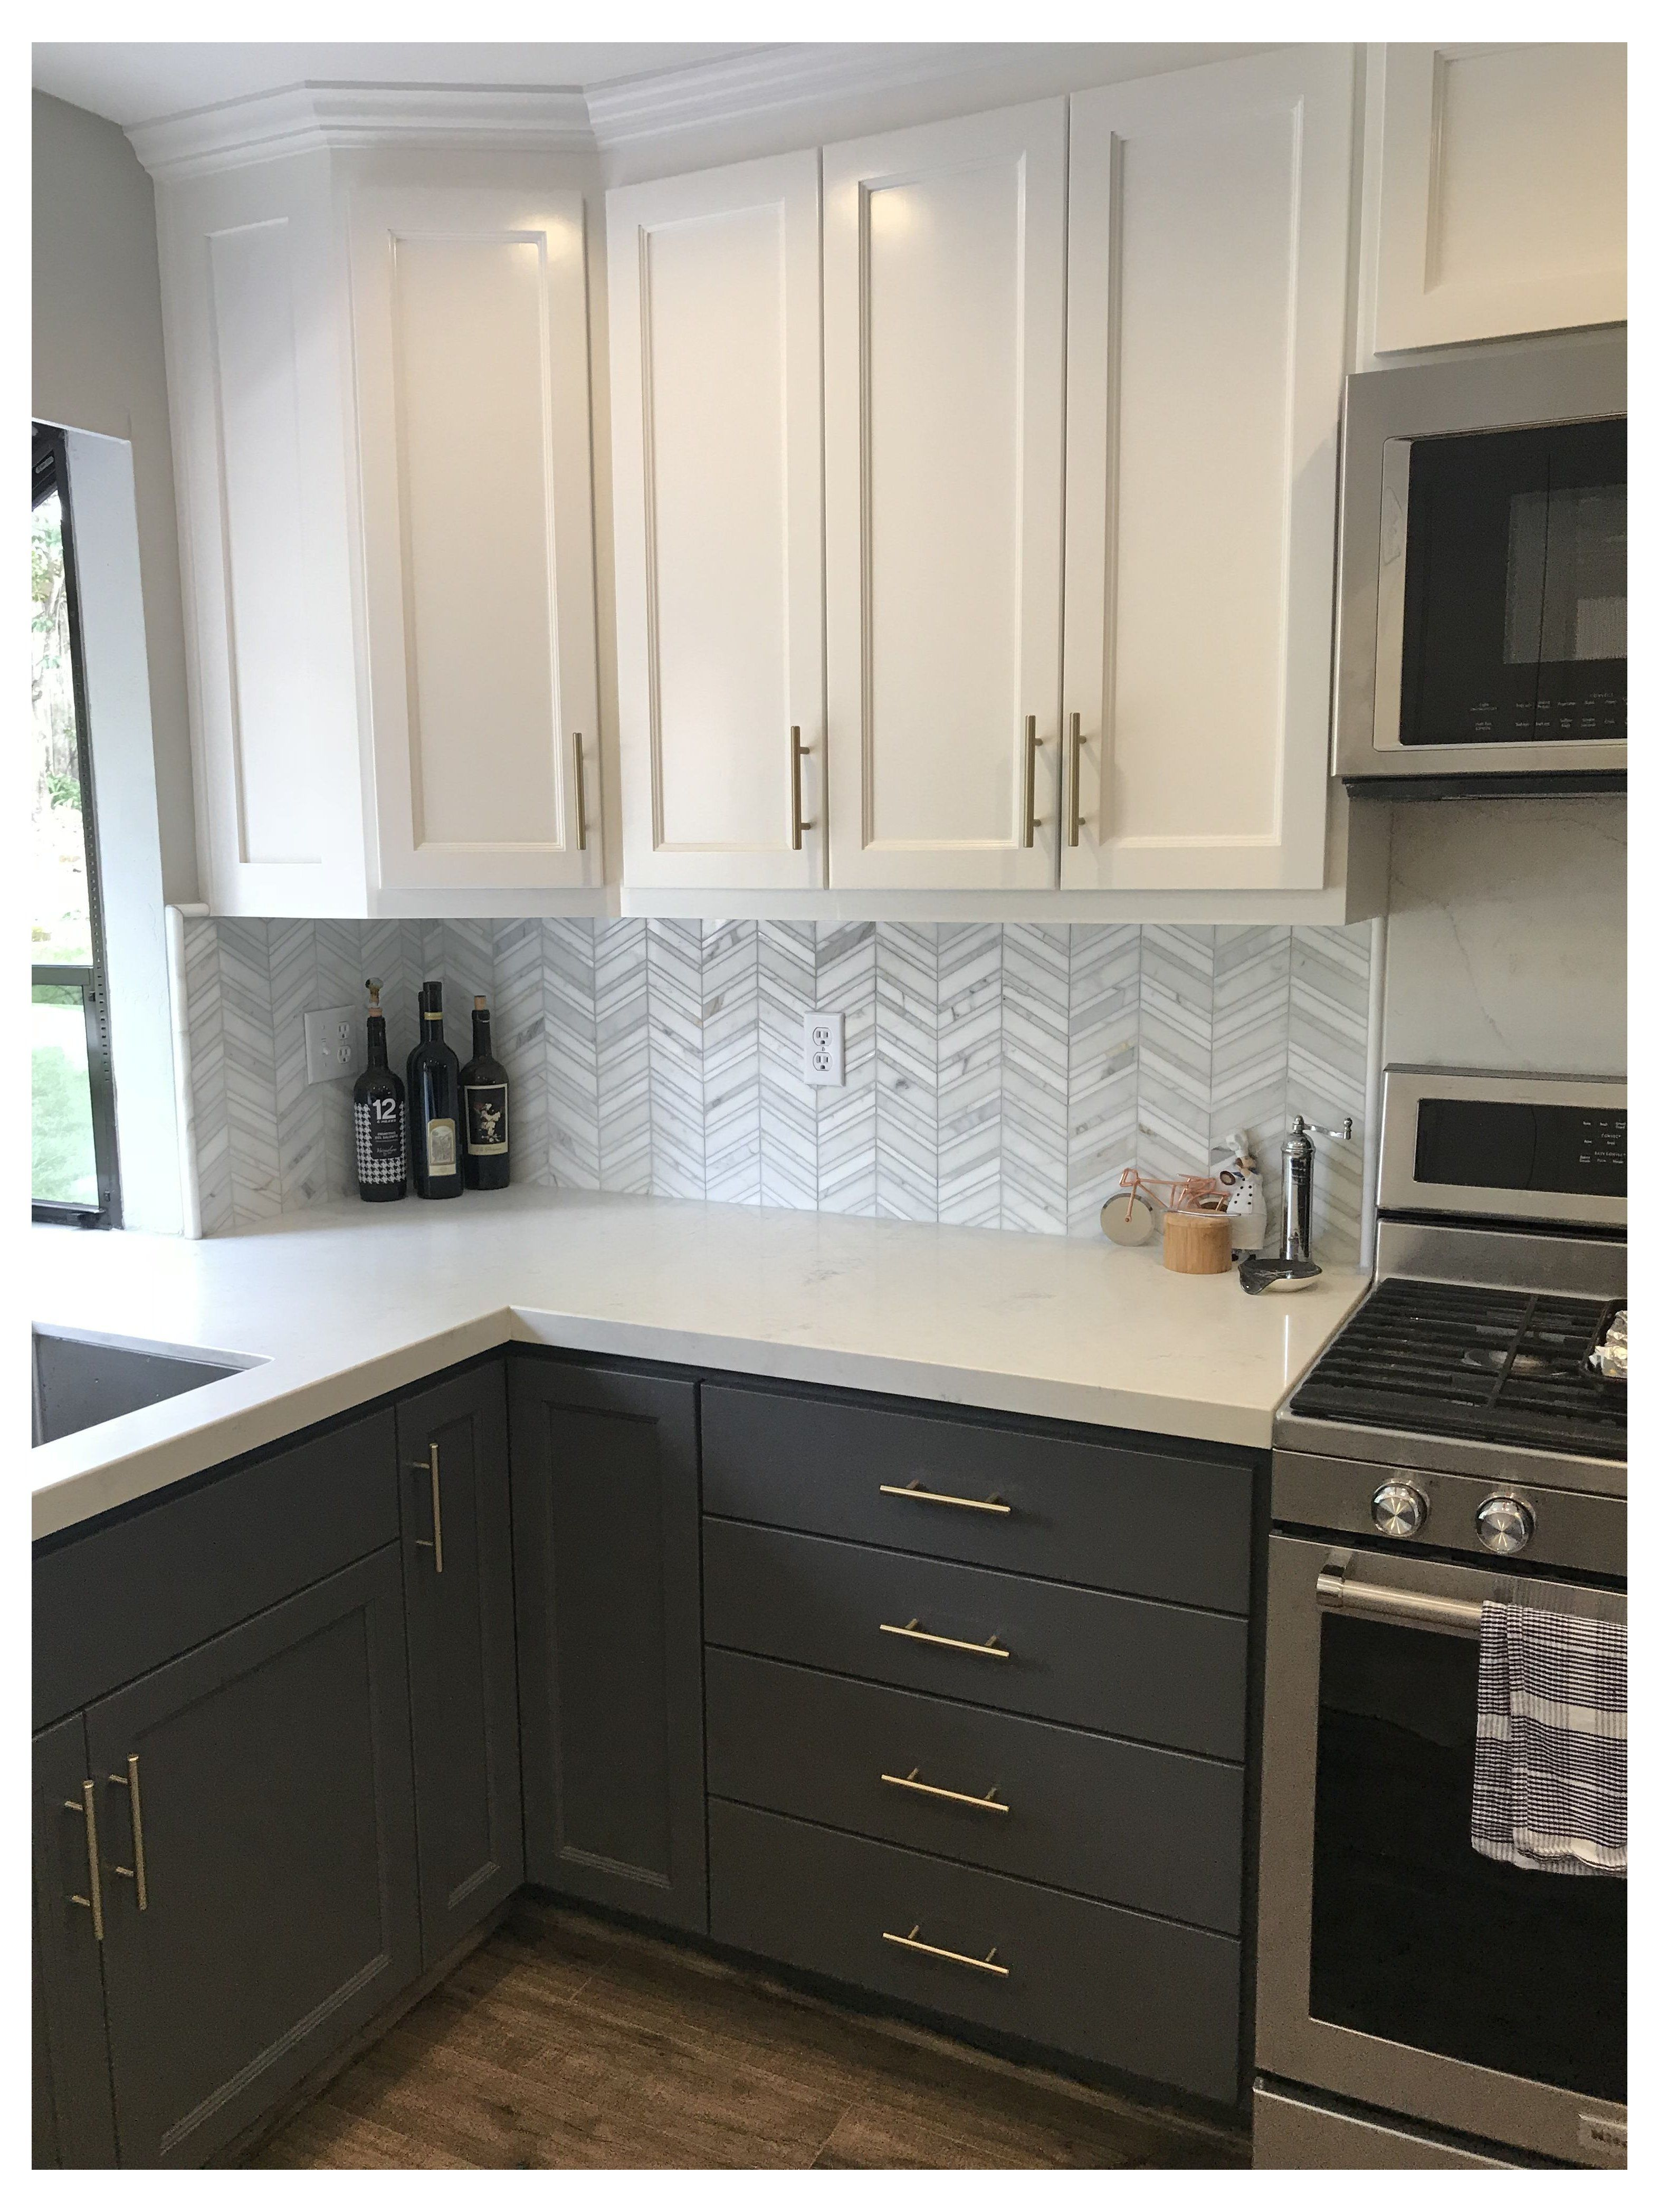 I Like The Idea Of Dark Cabinets On Bottom And Light On Top Though I Think I W In 2020 Kitchen Cabinets With Black Appliances Kitchen Design Trendy Kitchen Backsplash